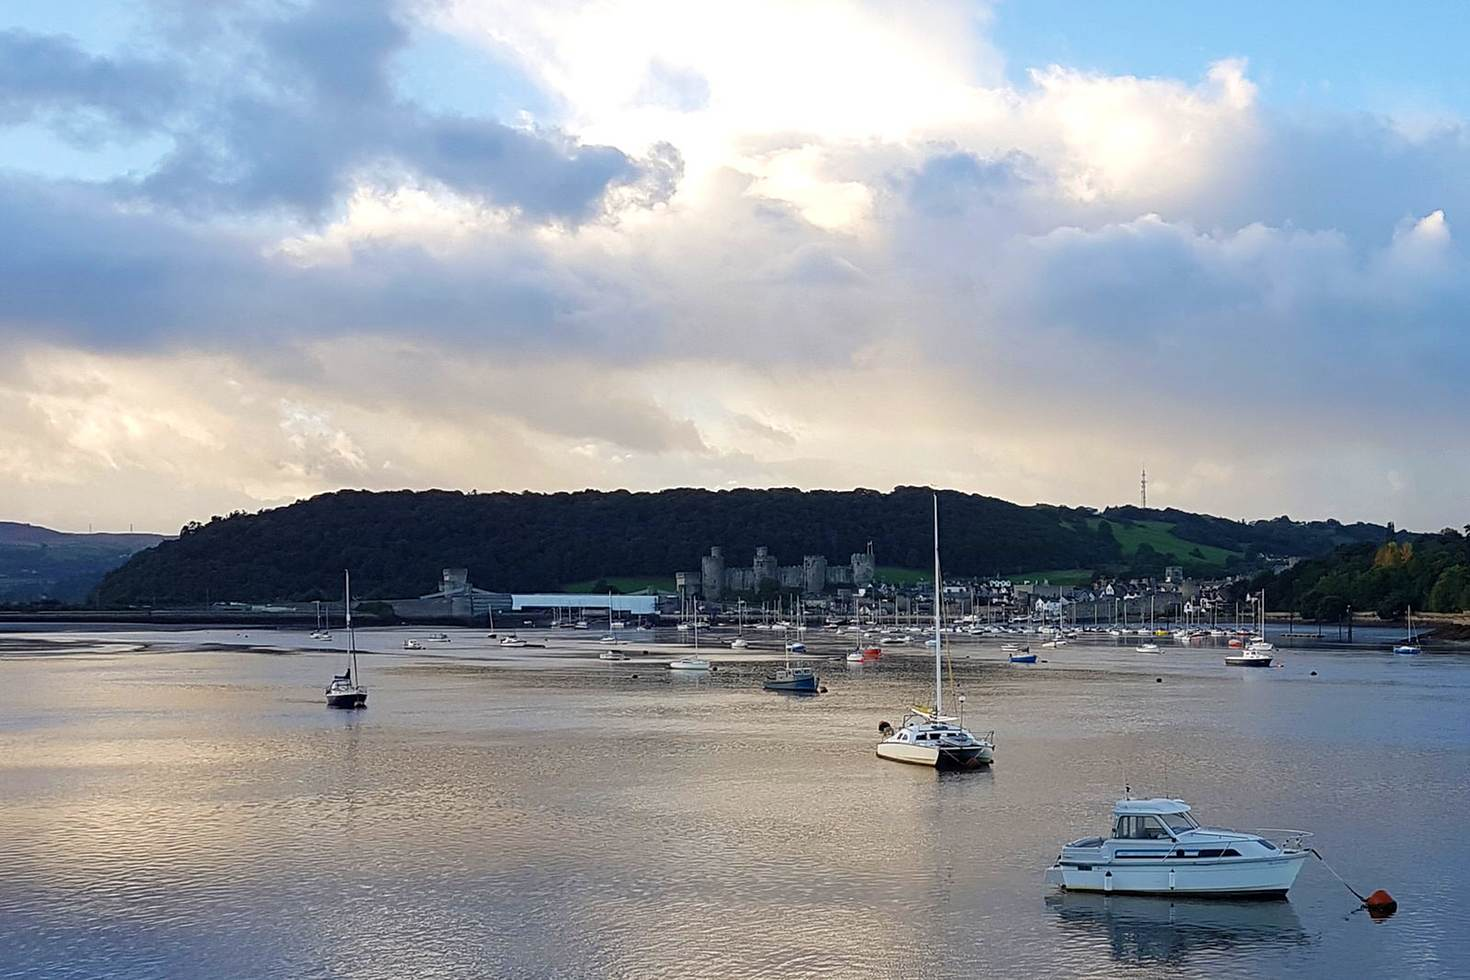 Conwy, with its distinctive castle, seen from the Quay hotel in Deganwy © James Smart / Lonely Planet